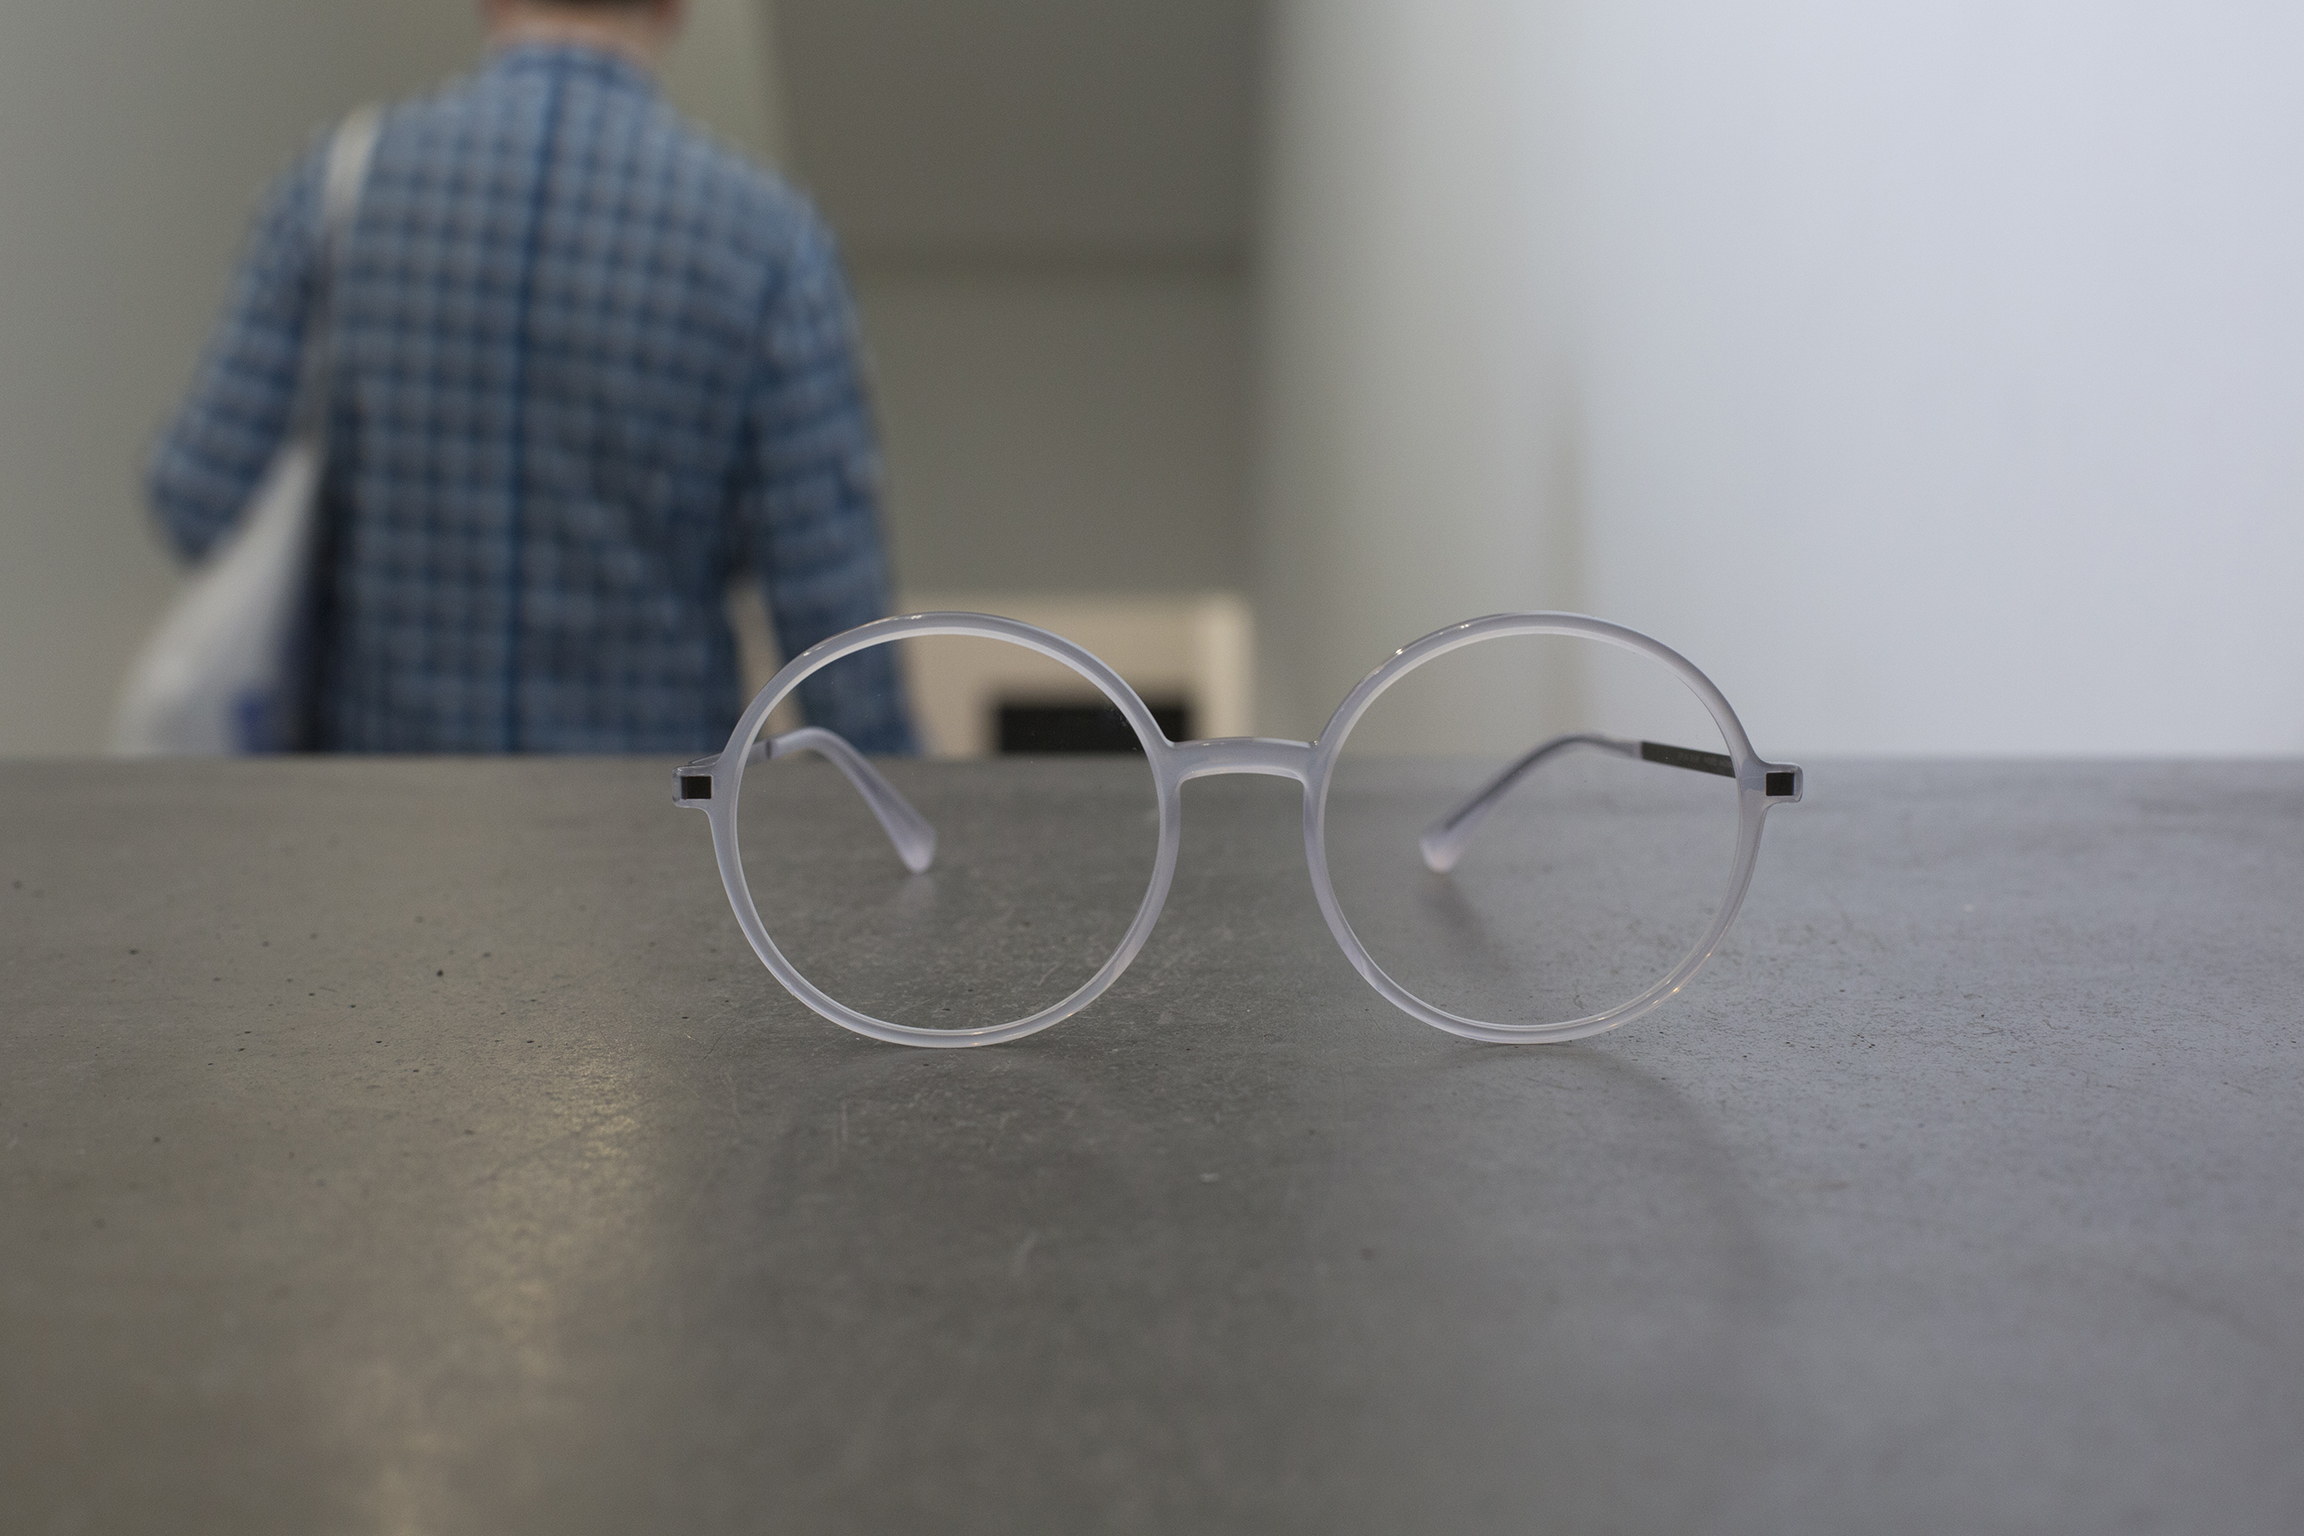 From Manifesta 11 in Zurich, MYKITA presents the best five glasses for an art festival